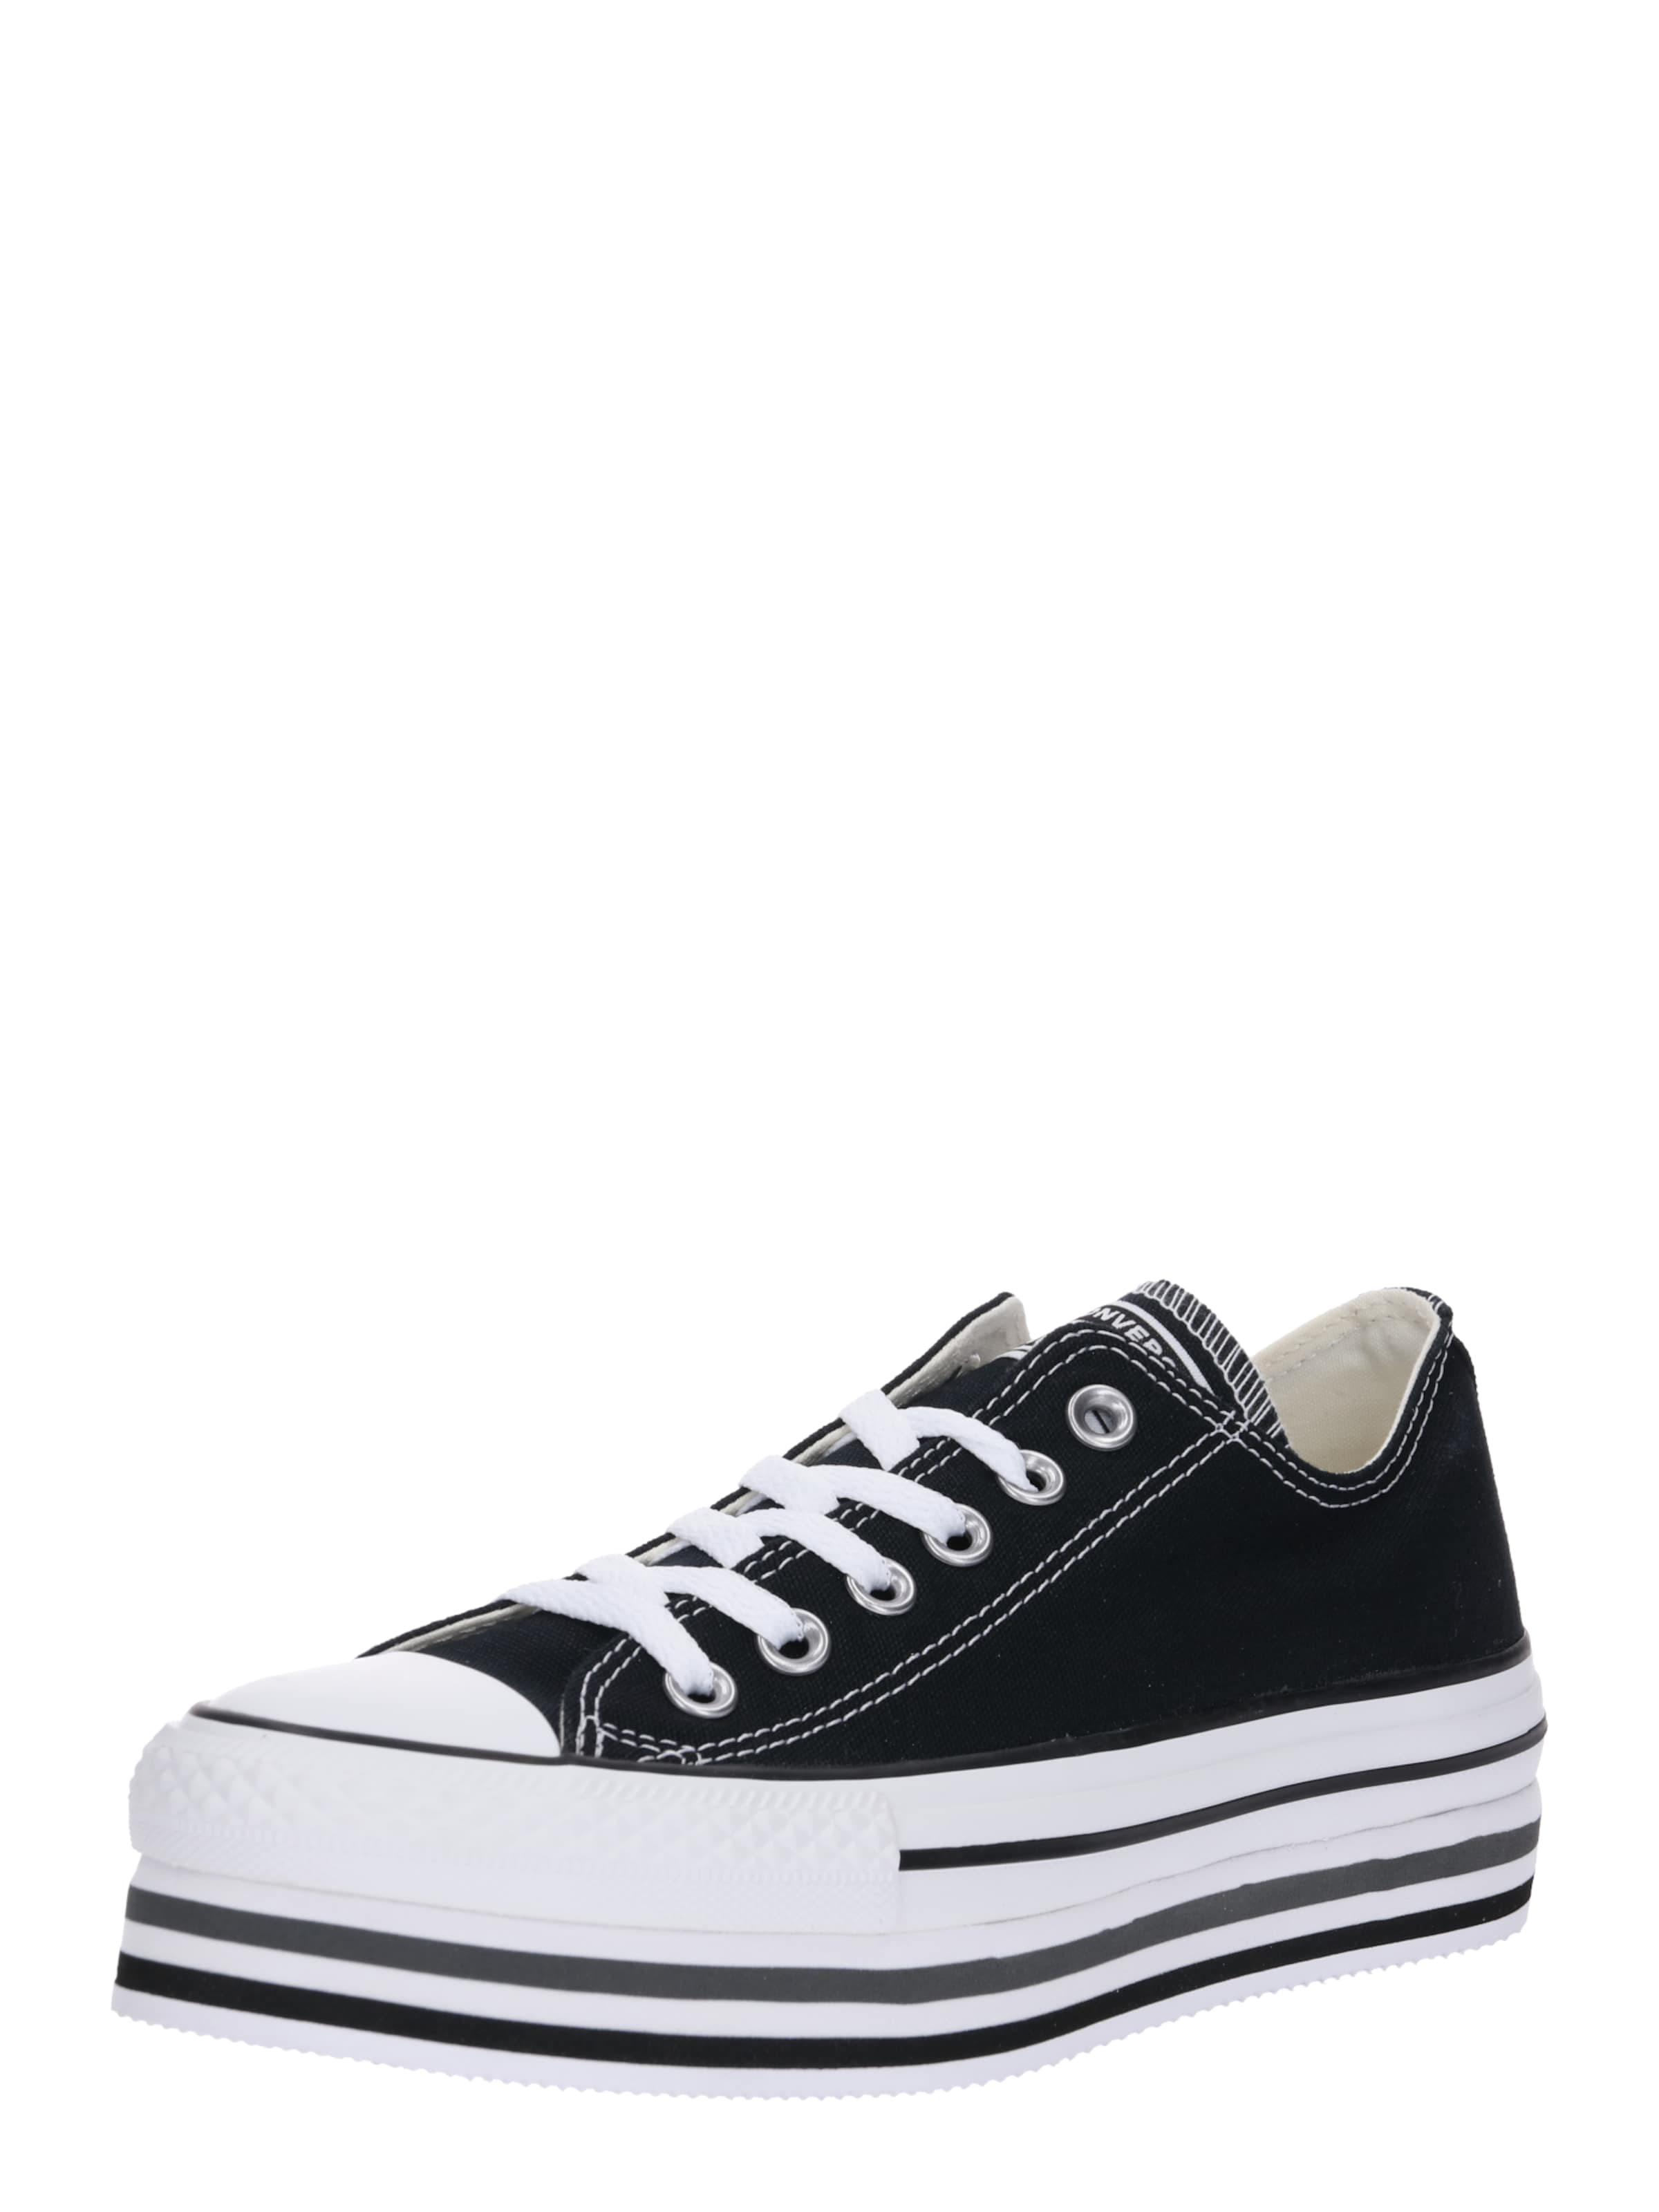 Silber 'chuck Platform In Star Converse Taylor All Sneaker LayerOx' eEH9DI2WY